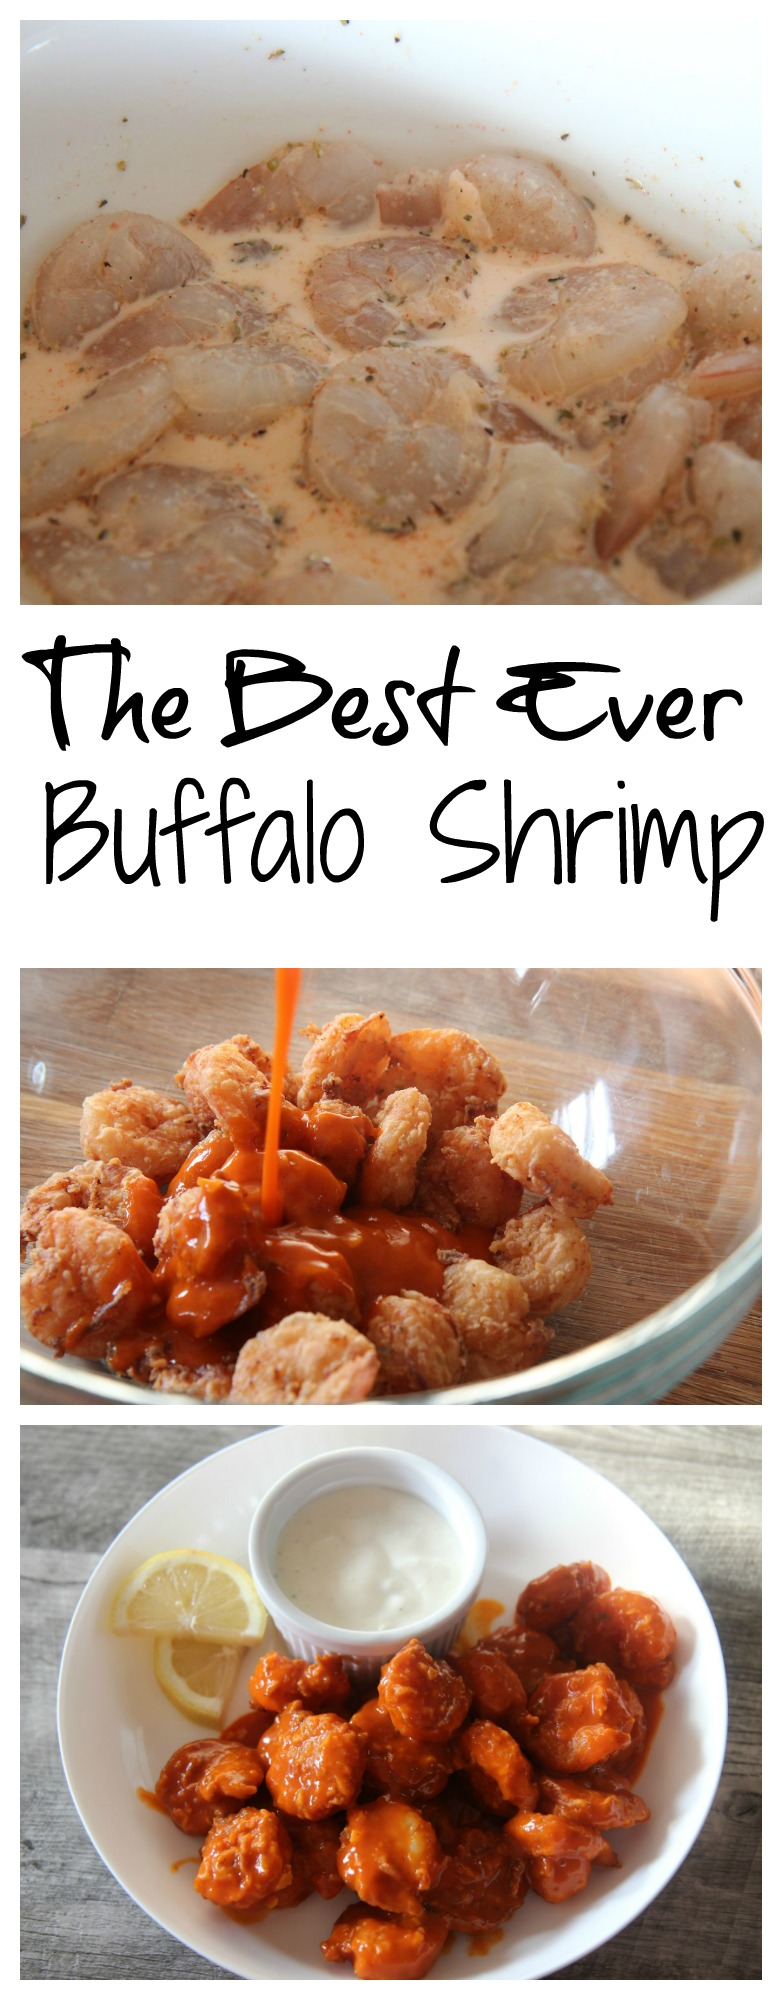 The Best Ever Buffalo Shrimp from Cooked by Julie!